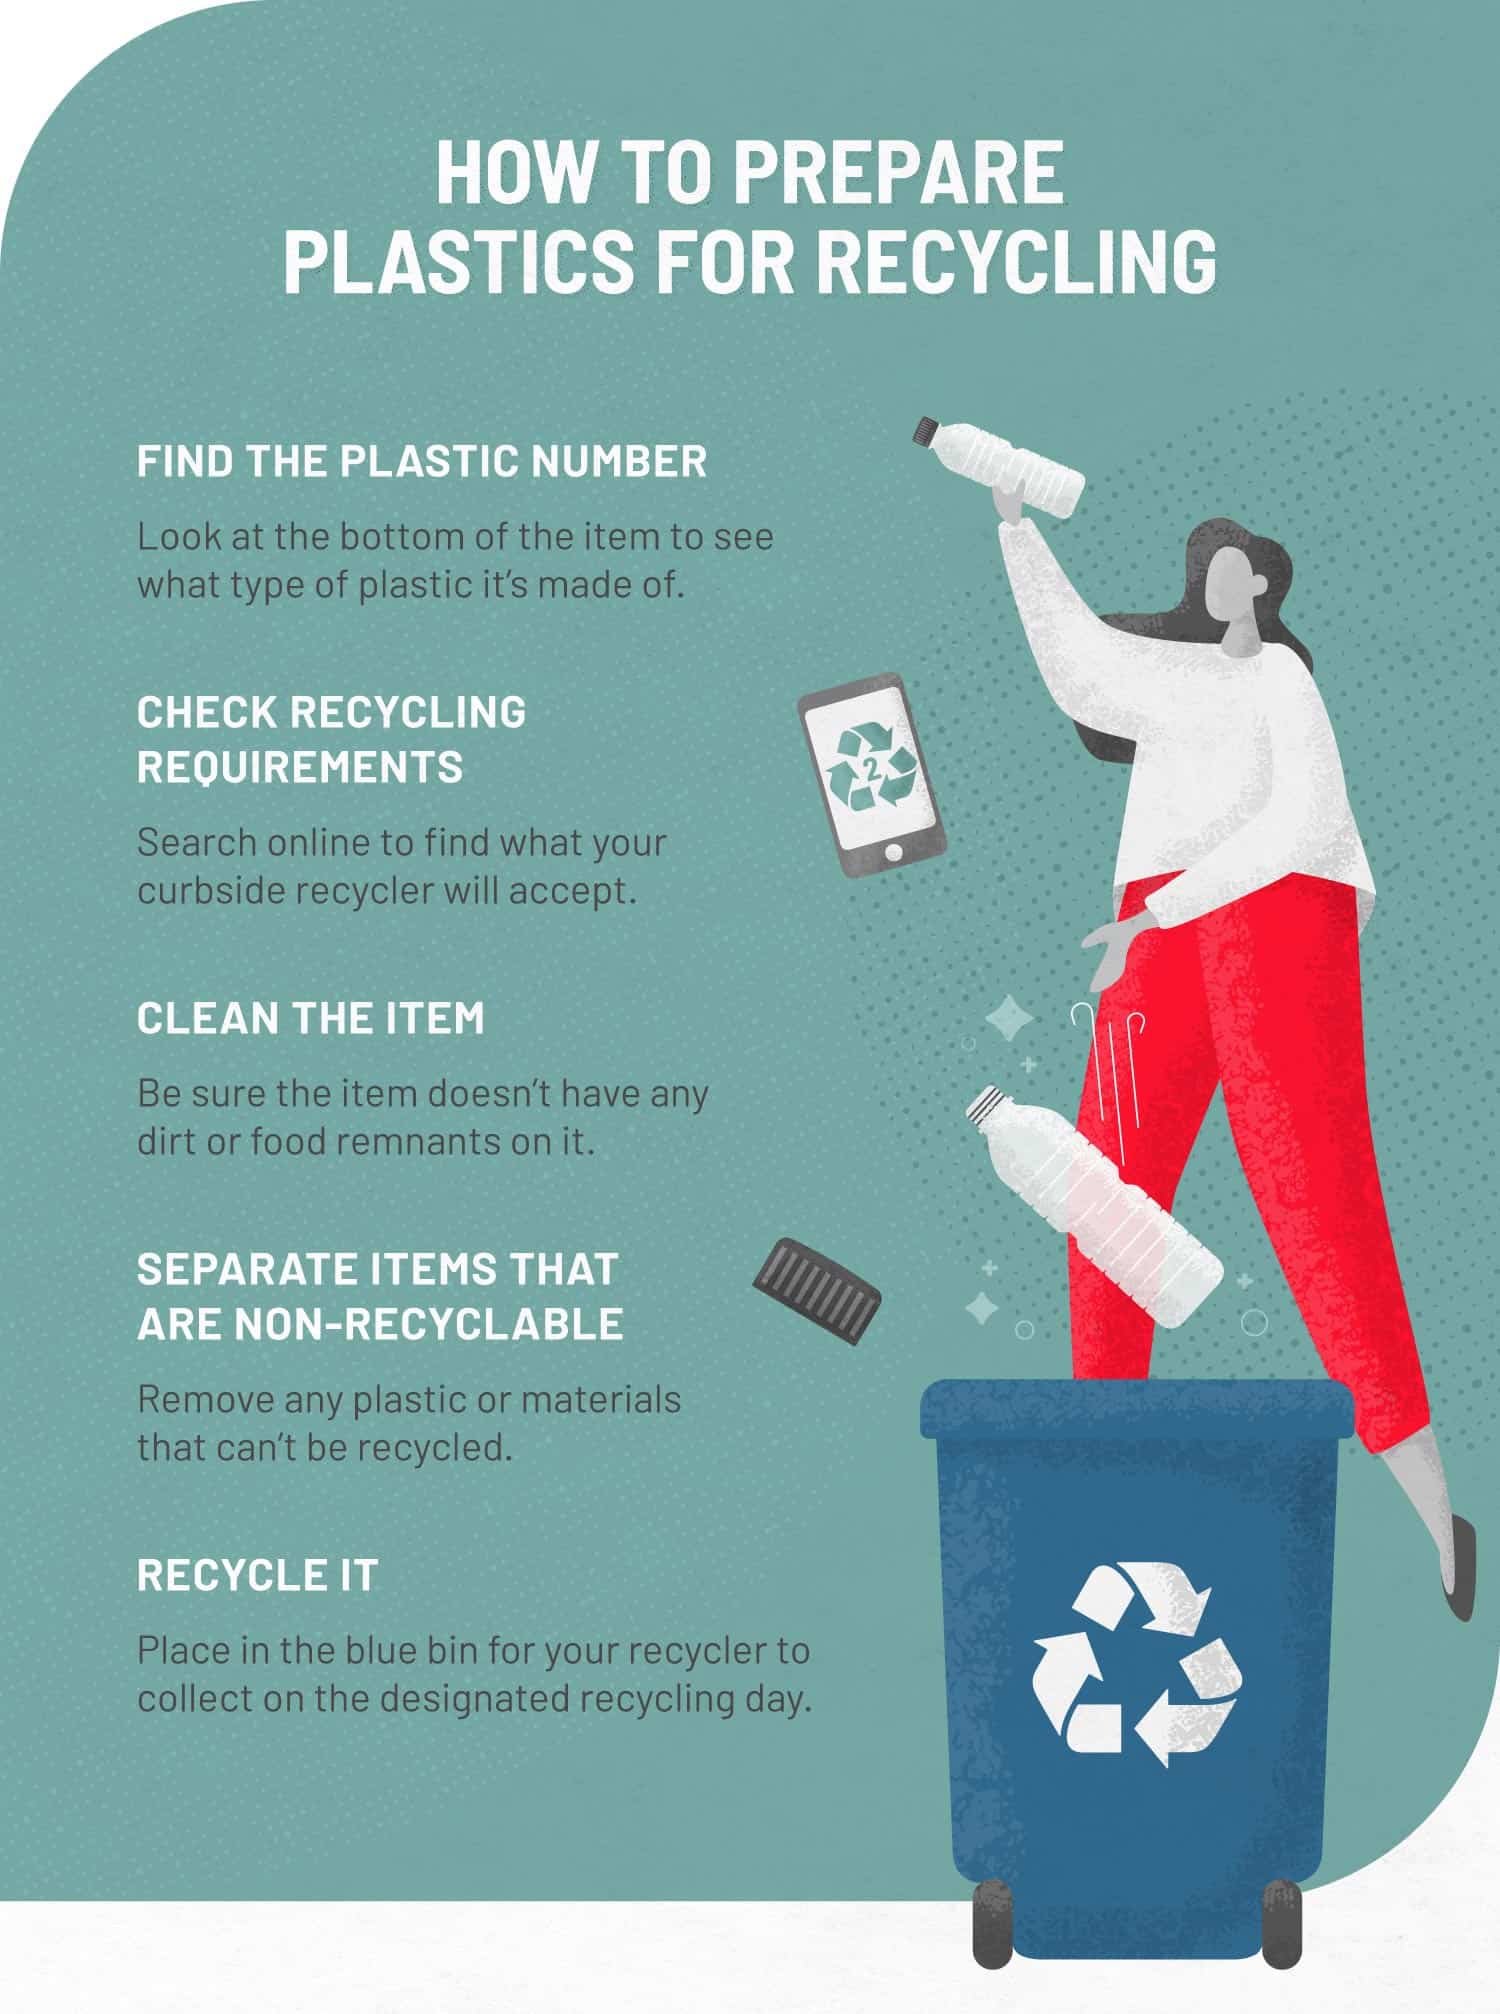 graphic that shows how to prepare items for recycling